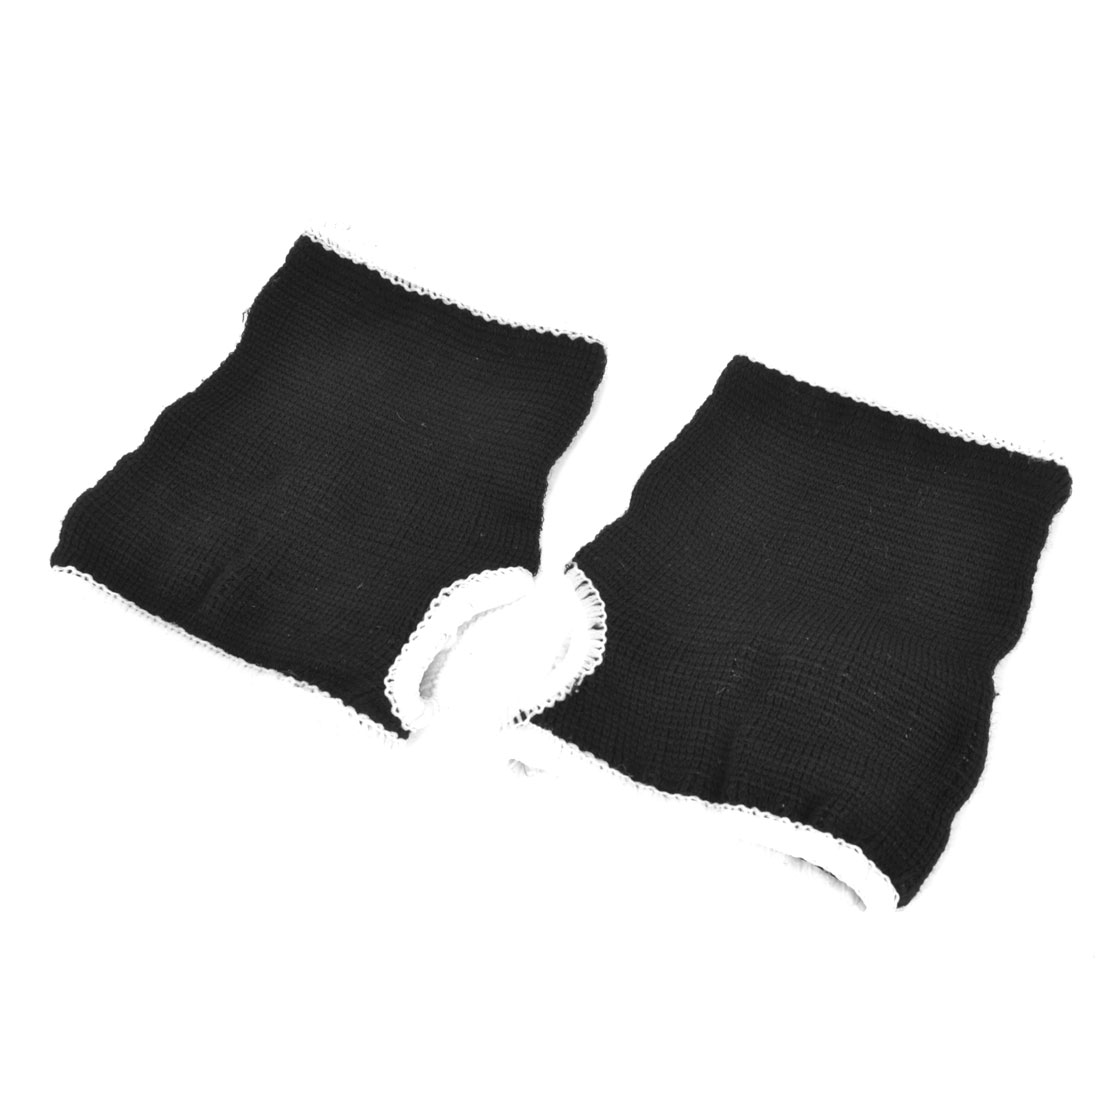 2 Pcs Thumbhole Design Black Knitted Palm Wrist Support Protectors